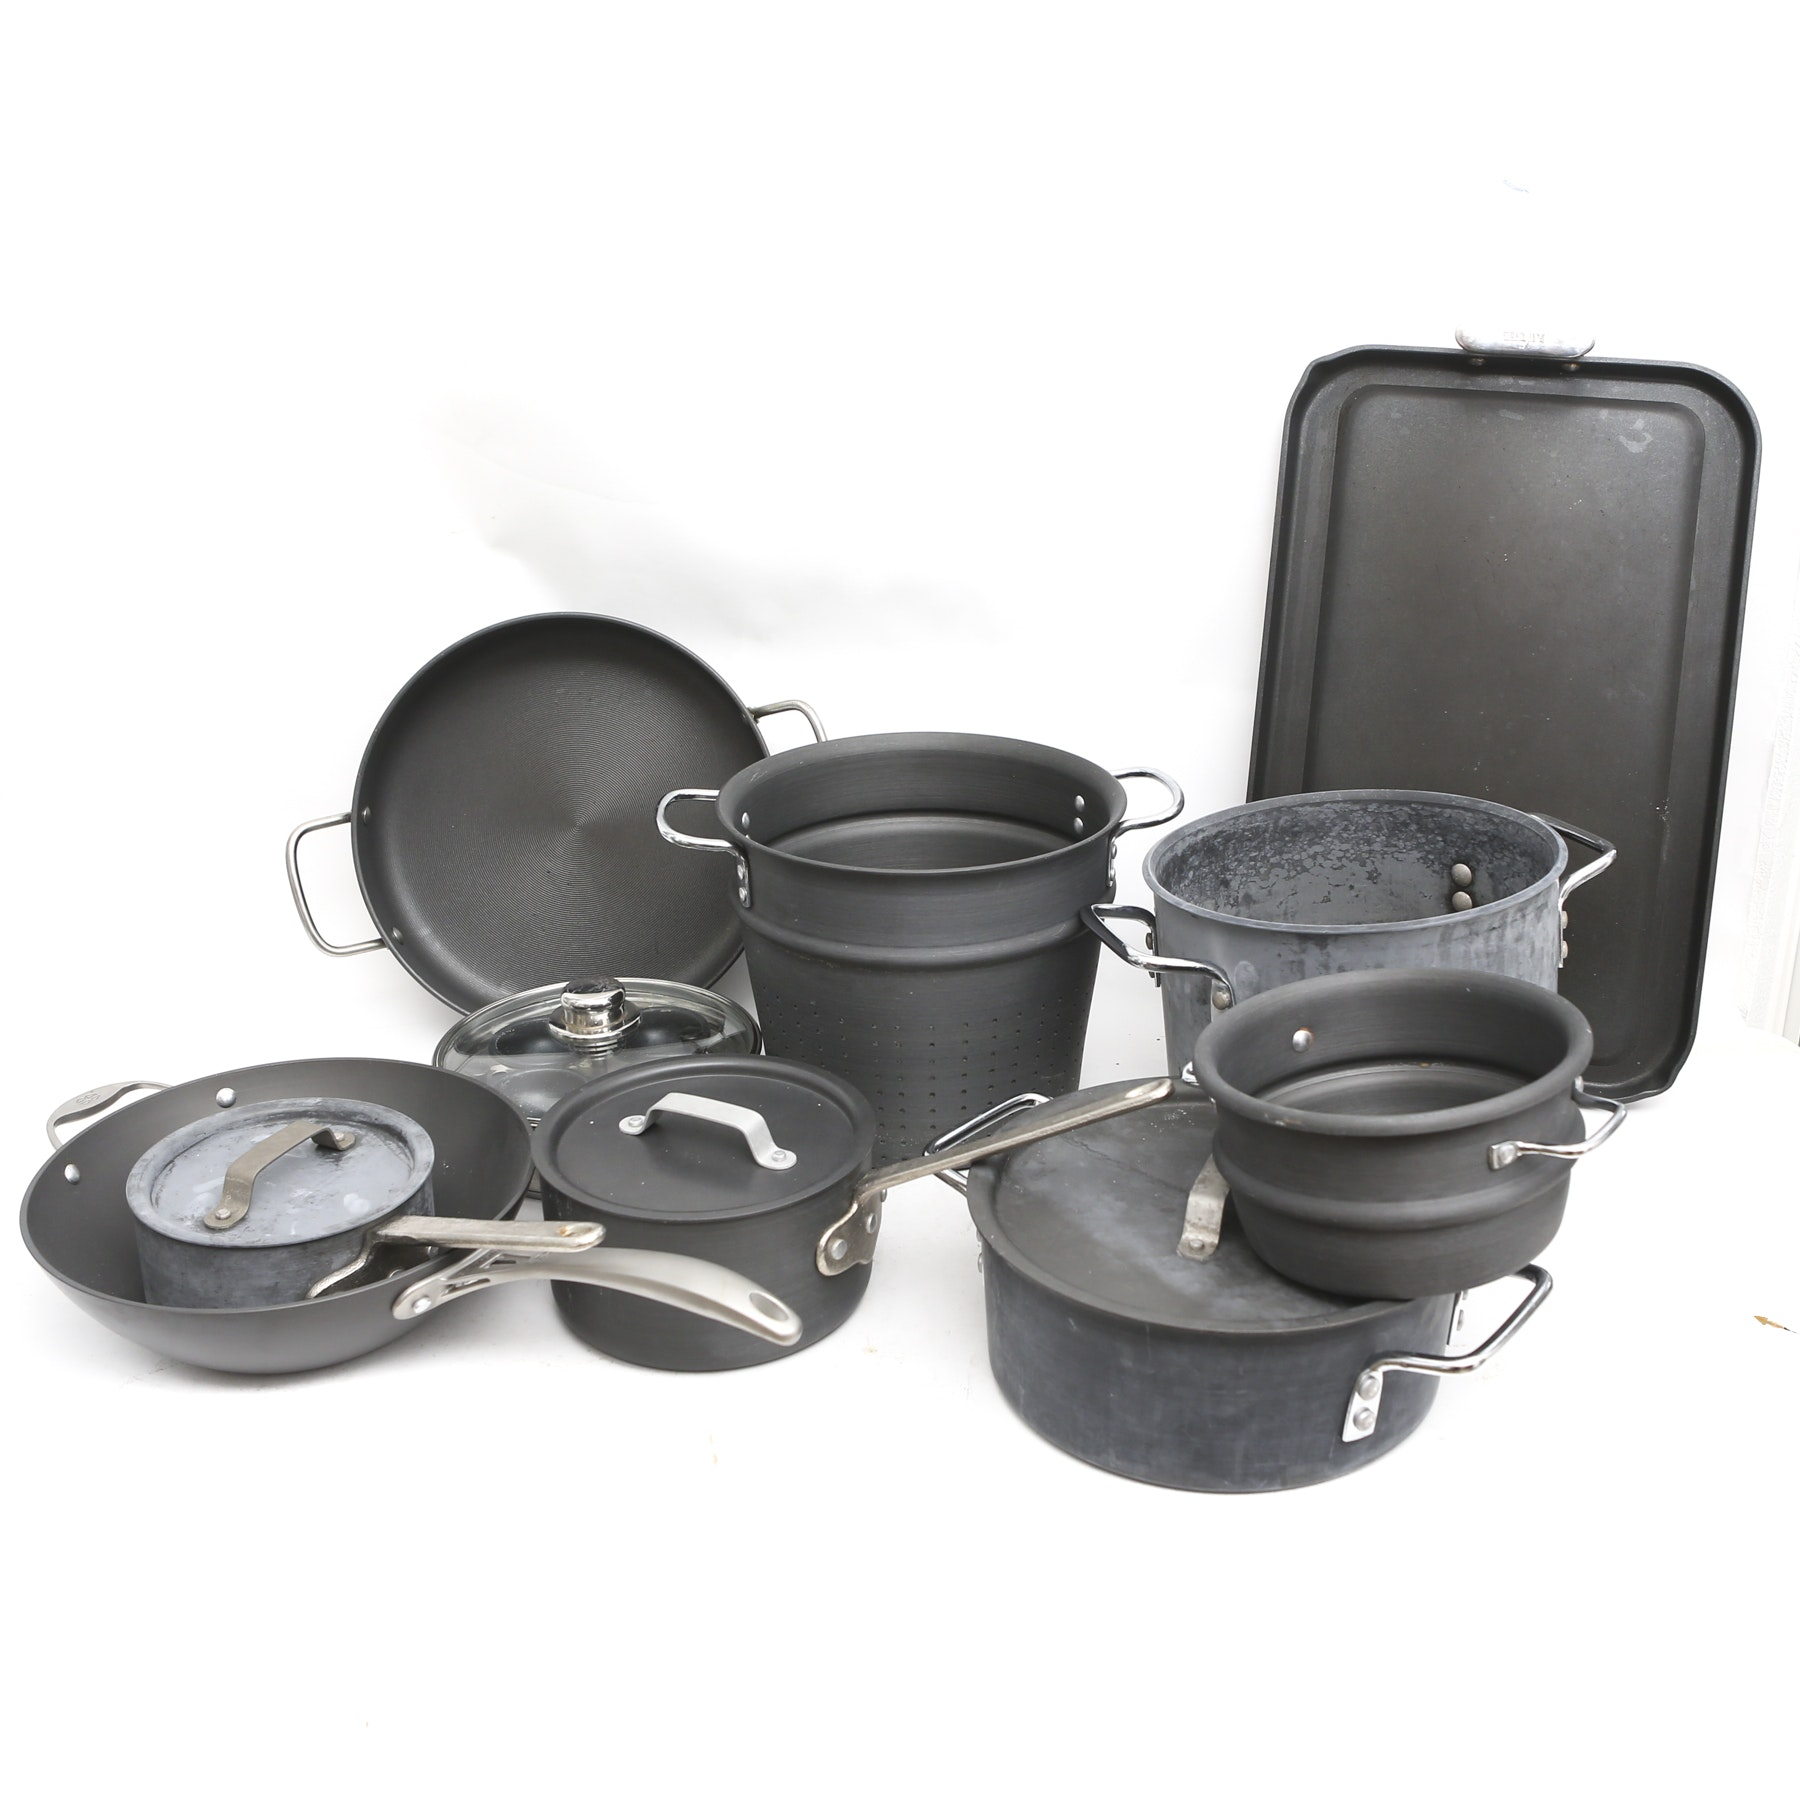 Commercial, Calphalon and All Clad Aluminum Cookware